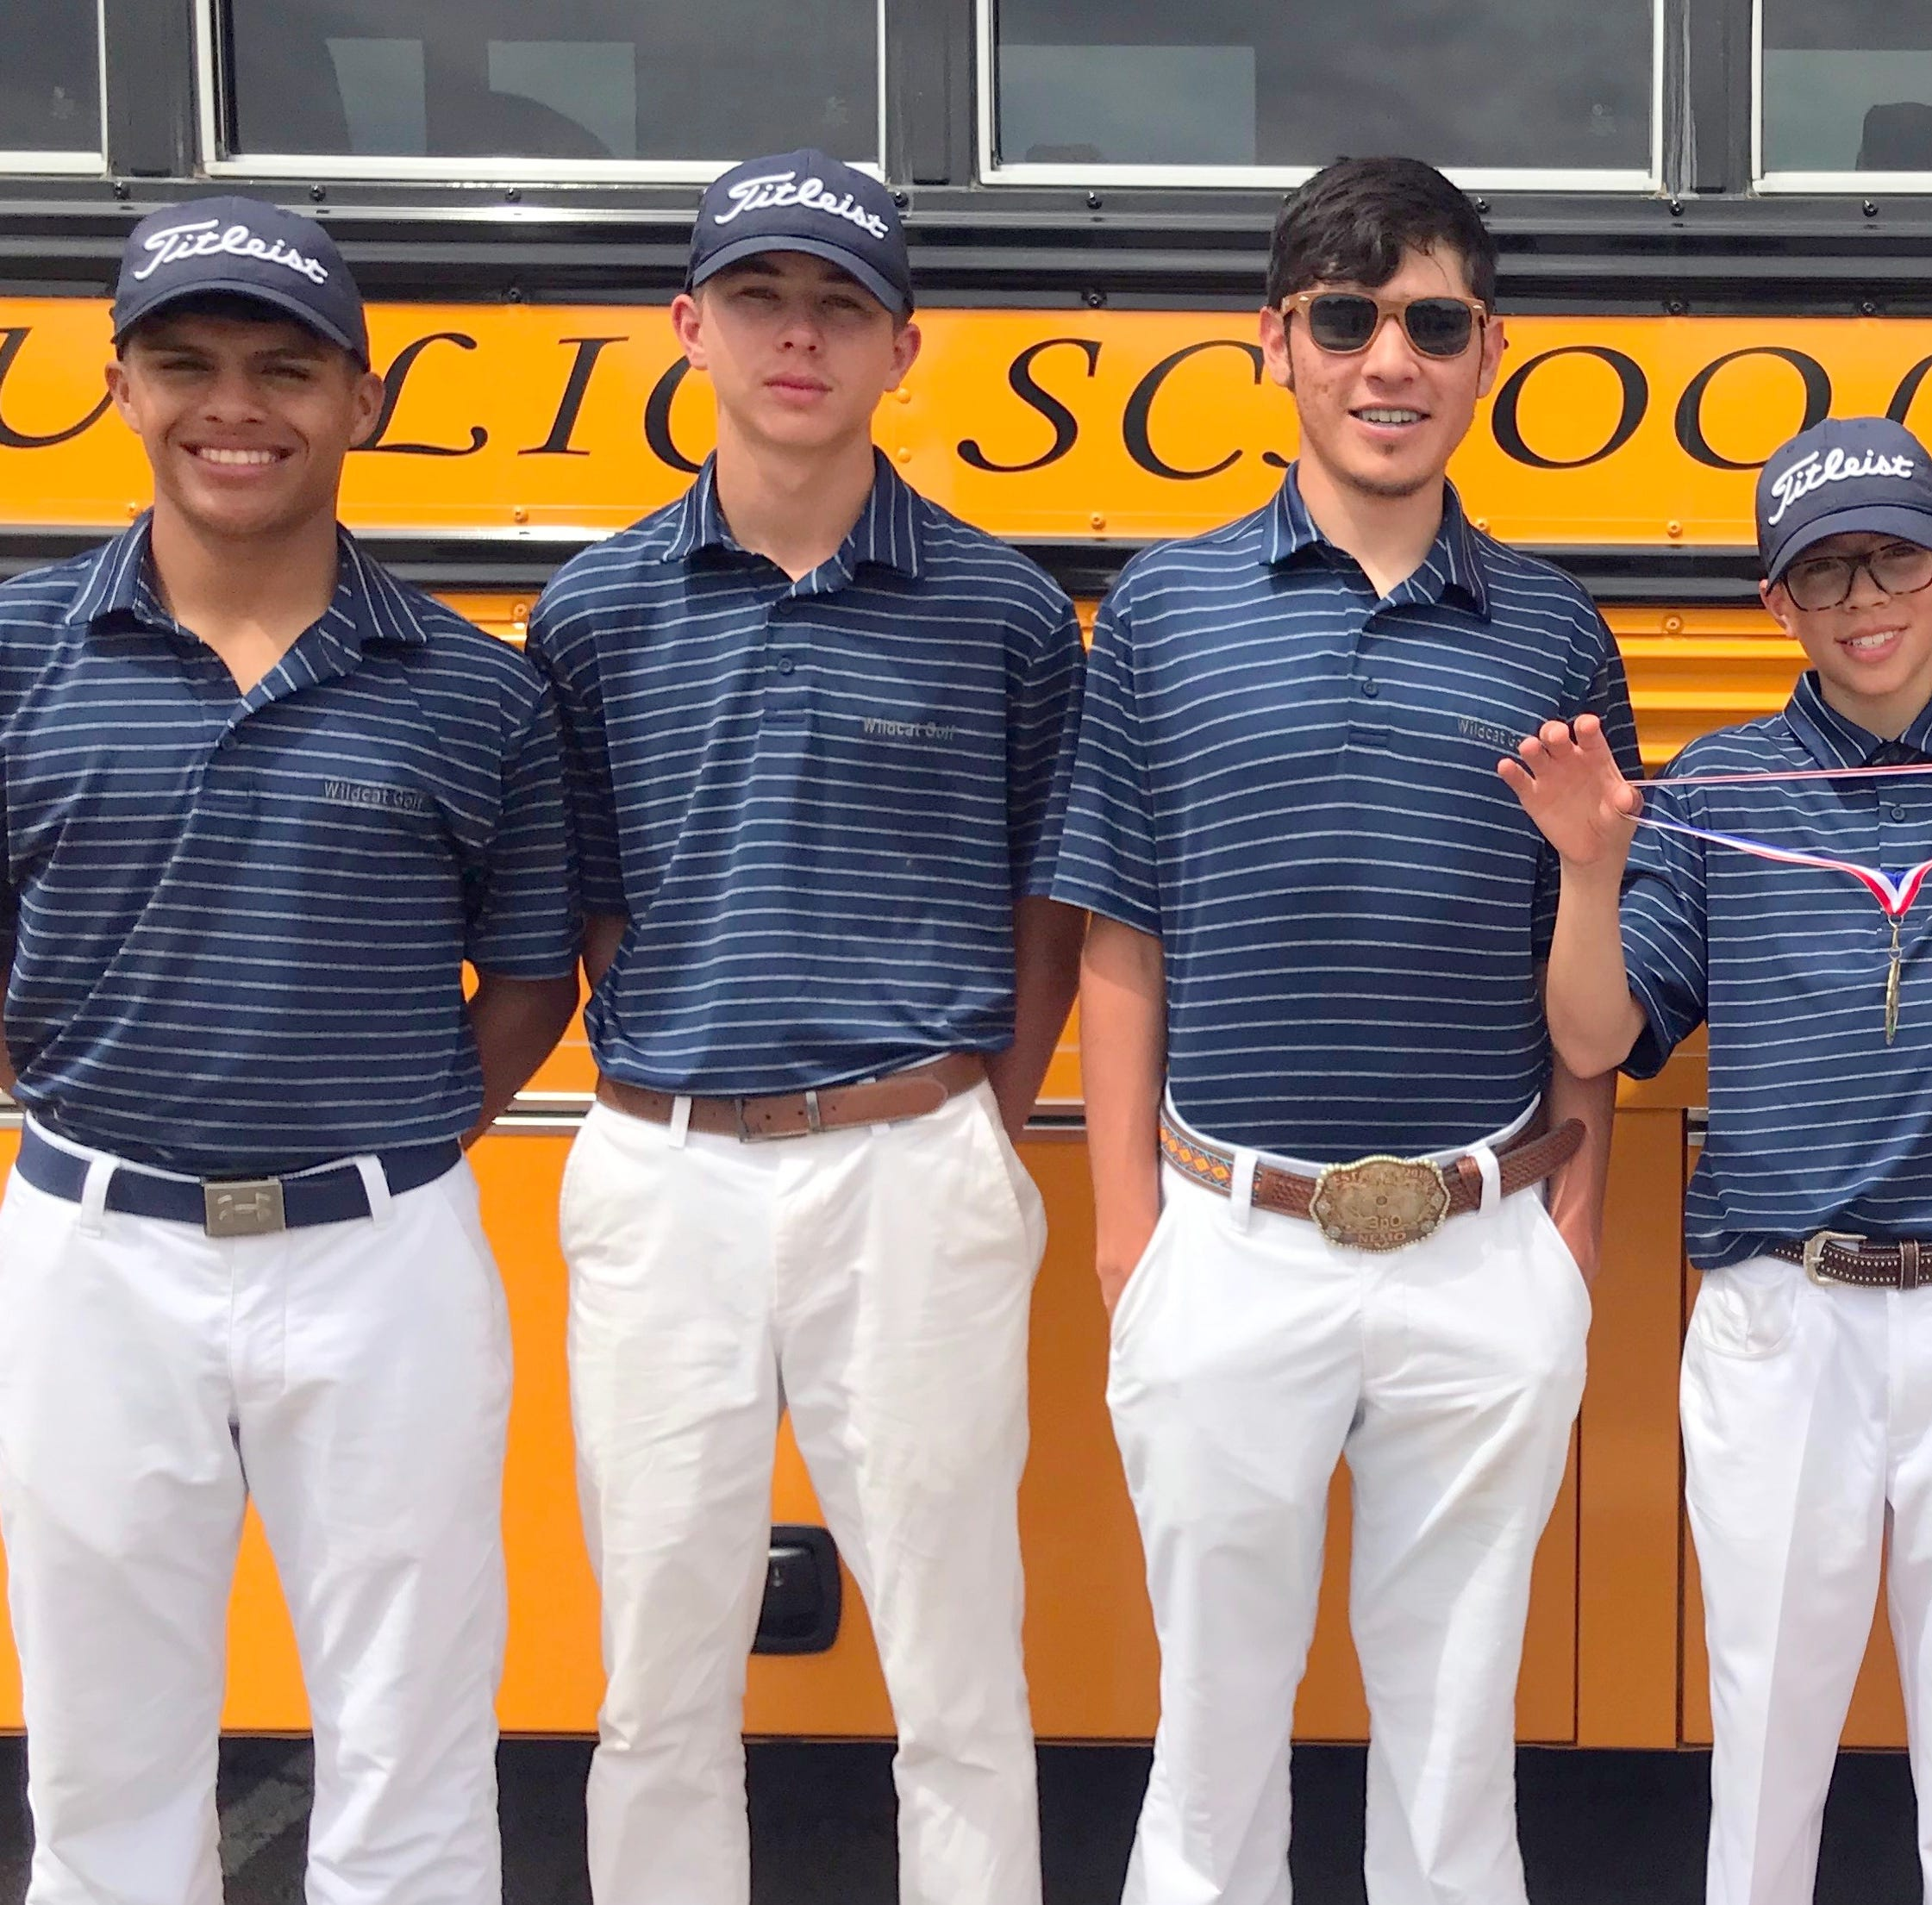 Deming High golf teams capture Spring River Classic titles at Roswell, NM